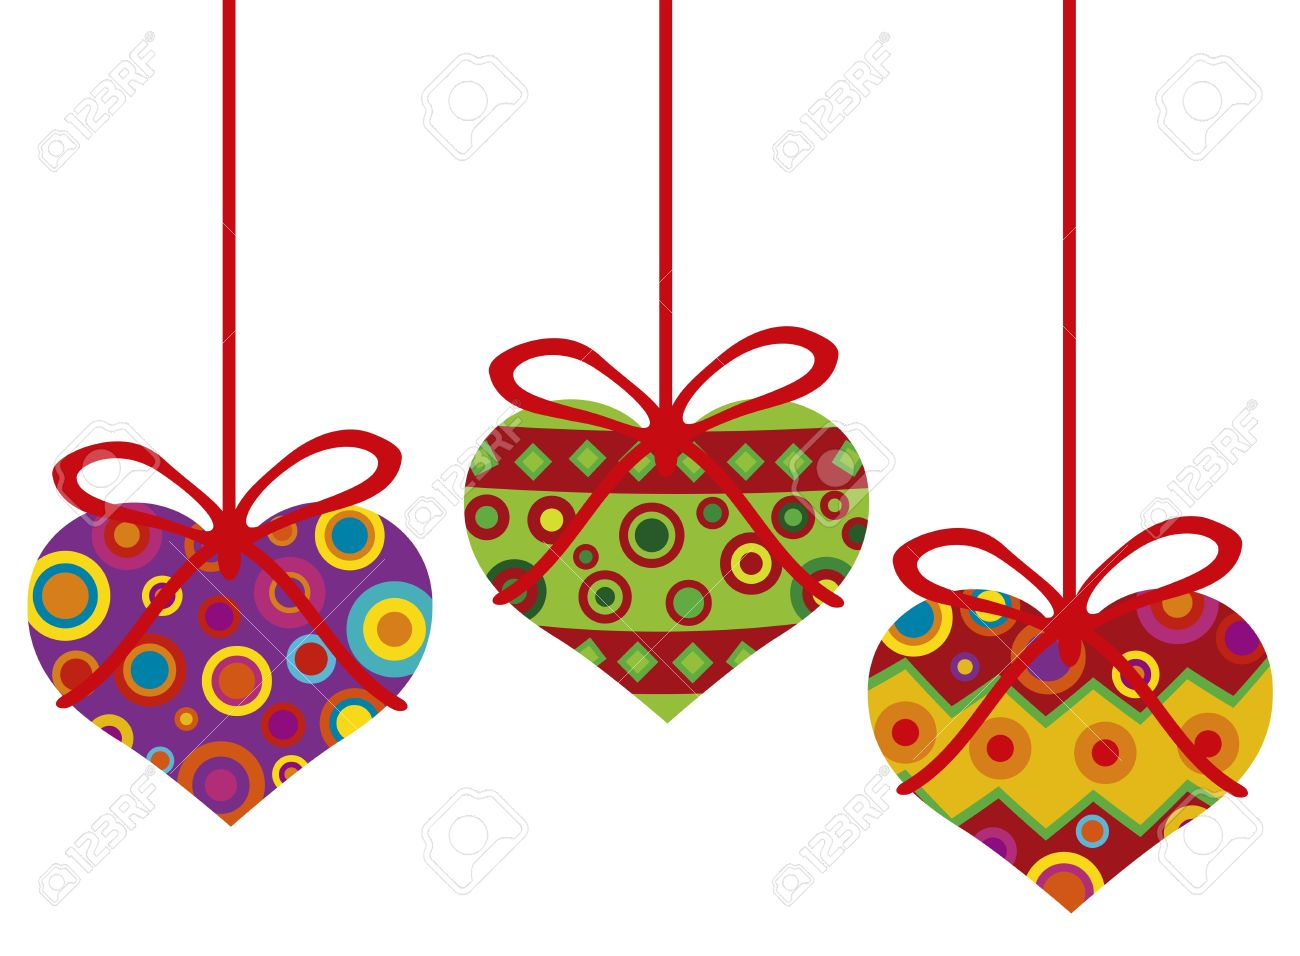 Happy Valentines Day Hanging Heart Shape Christmas Tree Ornaments